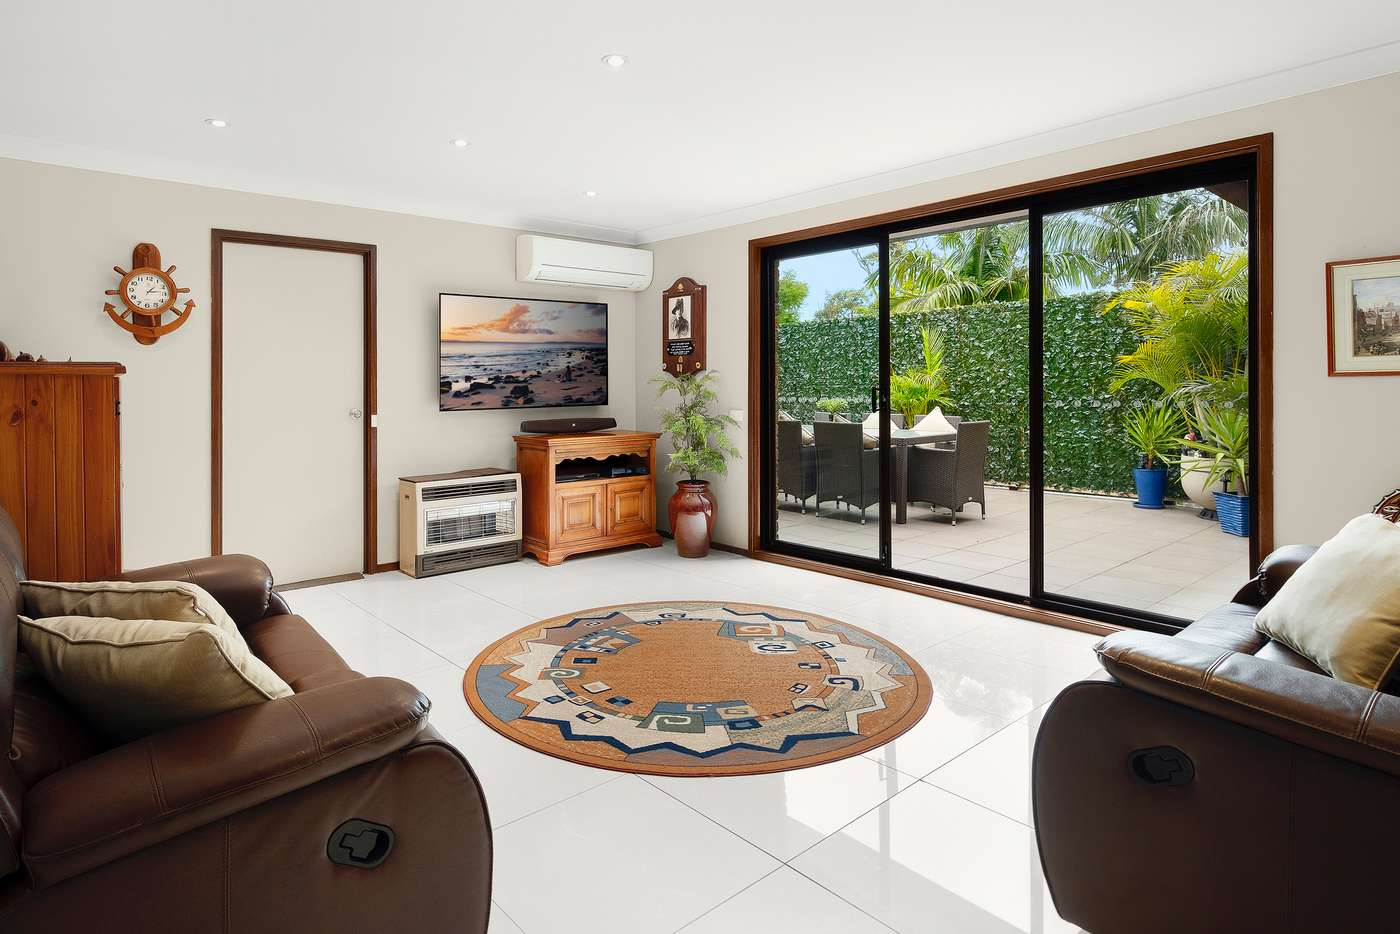 Fifth view of Homely house listing, 290 Warringah Road, Beacon Hill NSW 2100